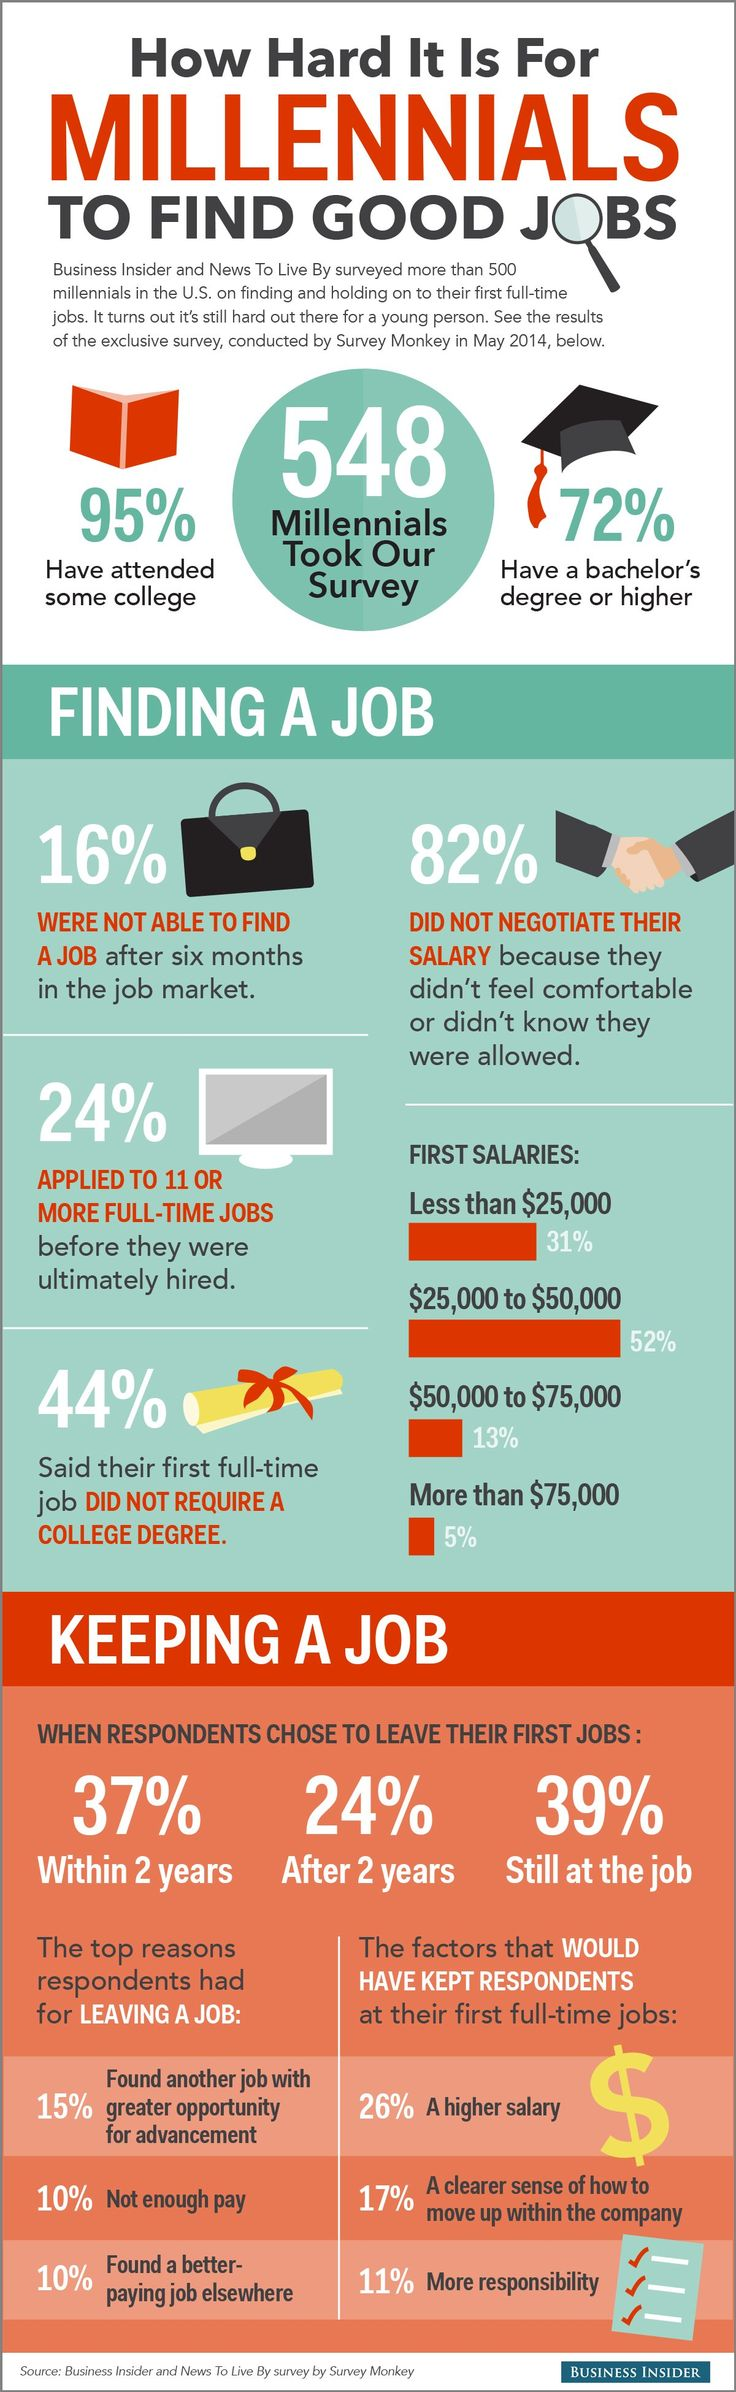 How hard it is for millennials to find jobs.